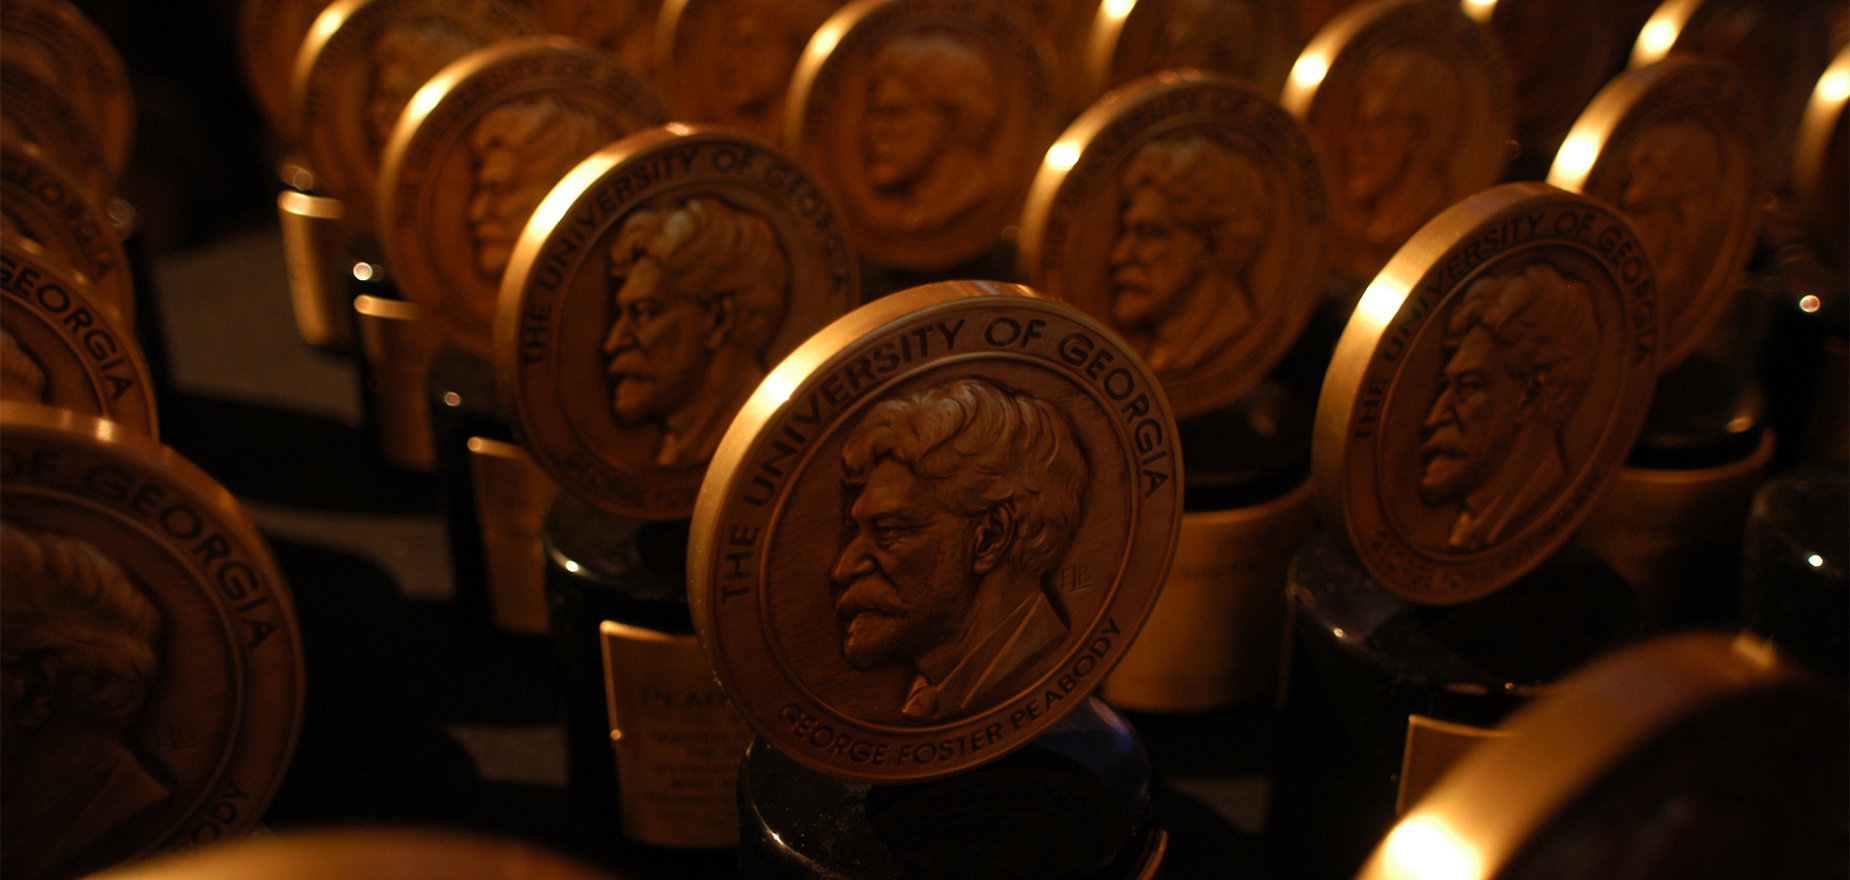 Inside Amy Schumer, Last Week Tonight with John Oliver among 74th annual Peabody Awards winners